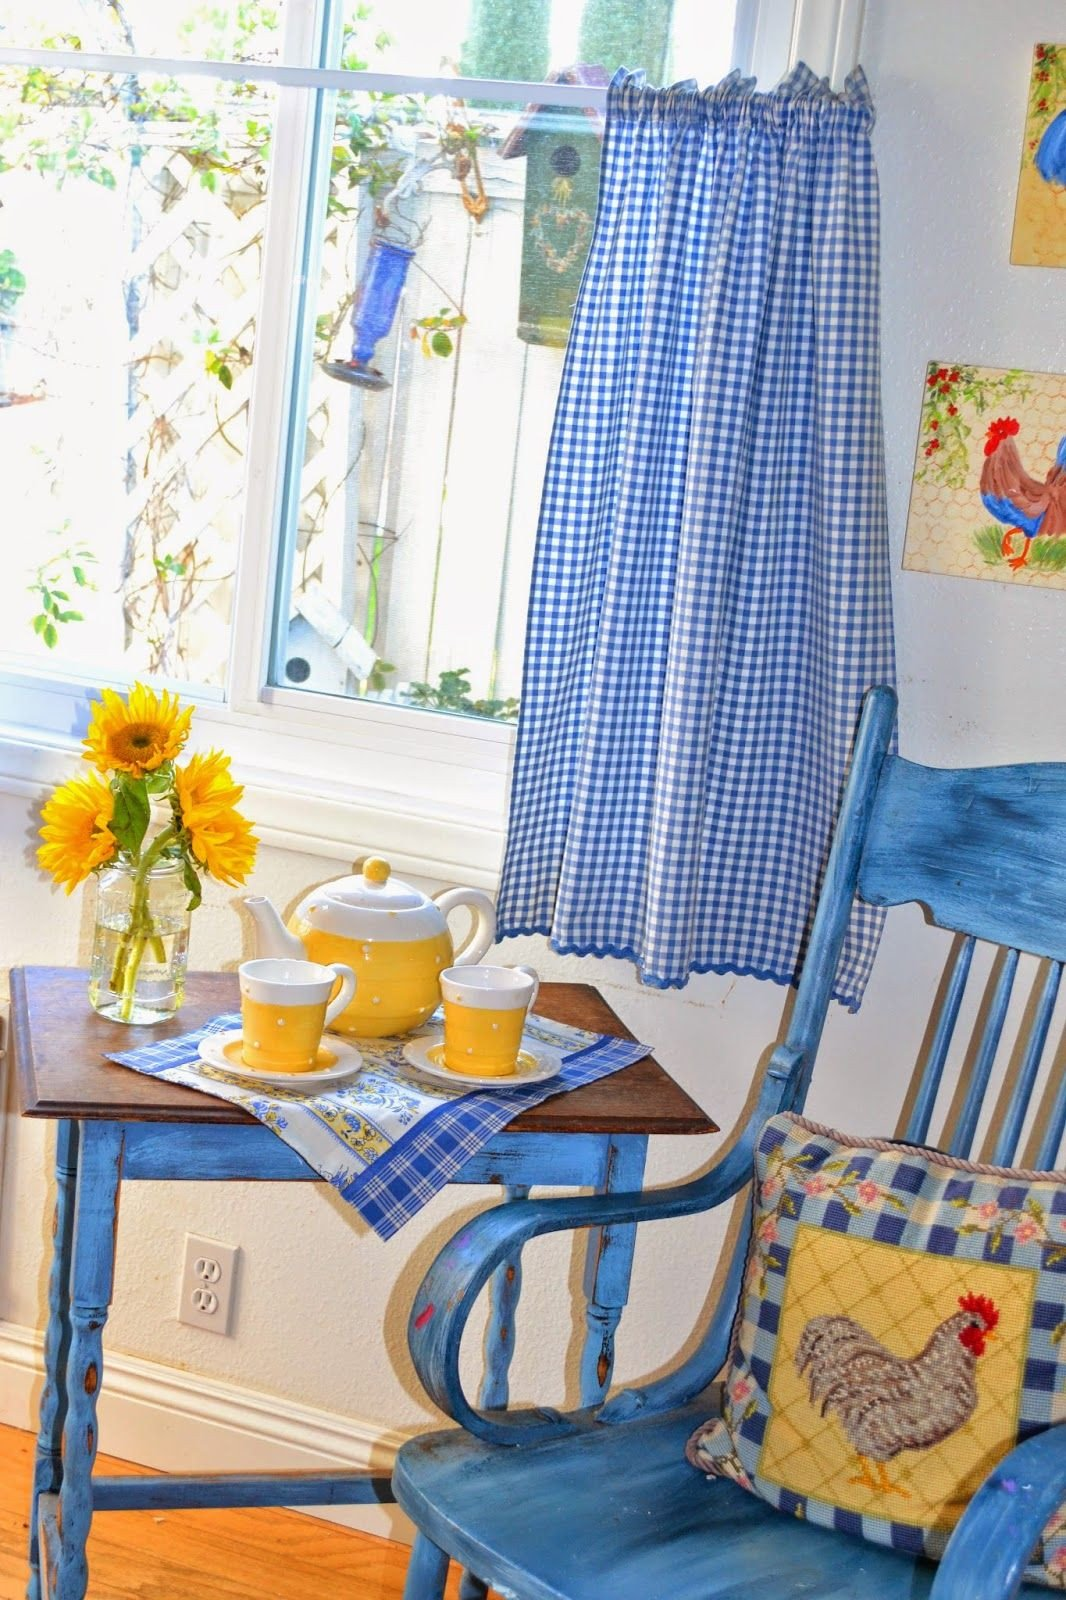 Blue and Yellow Kitchen Decor Awesome My Painted Garden Grow Your Blog Party Meet and Greet Gingham and Check In 2019